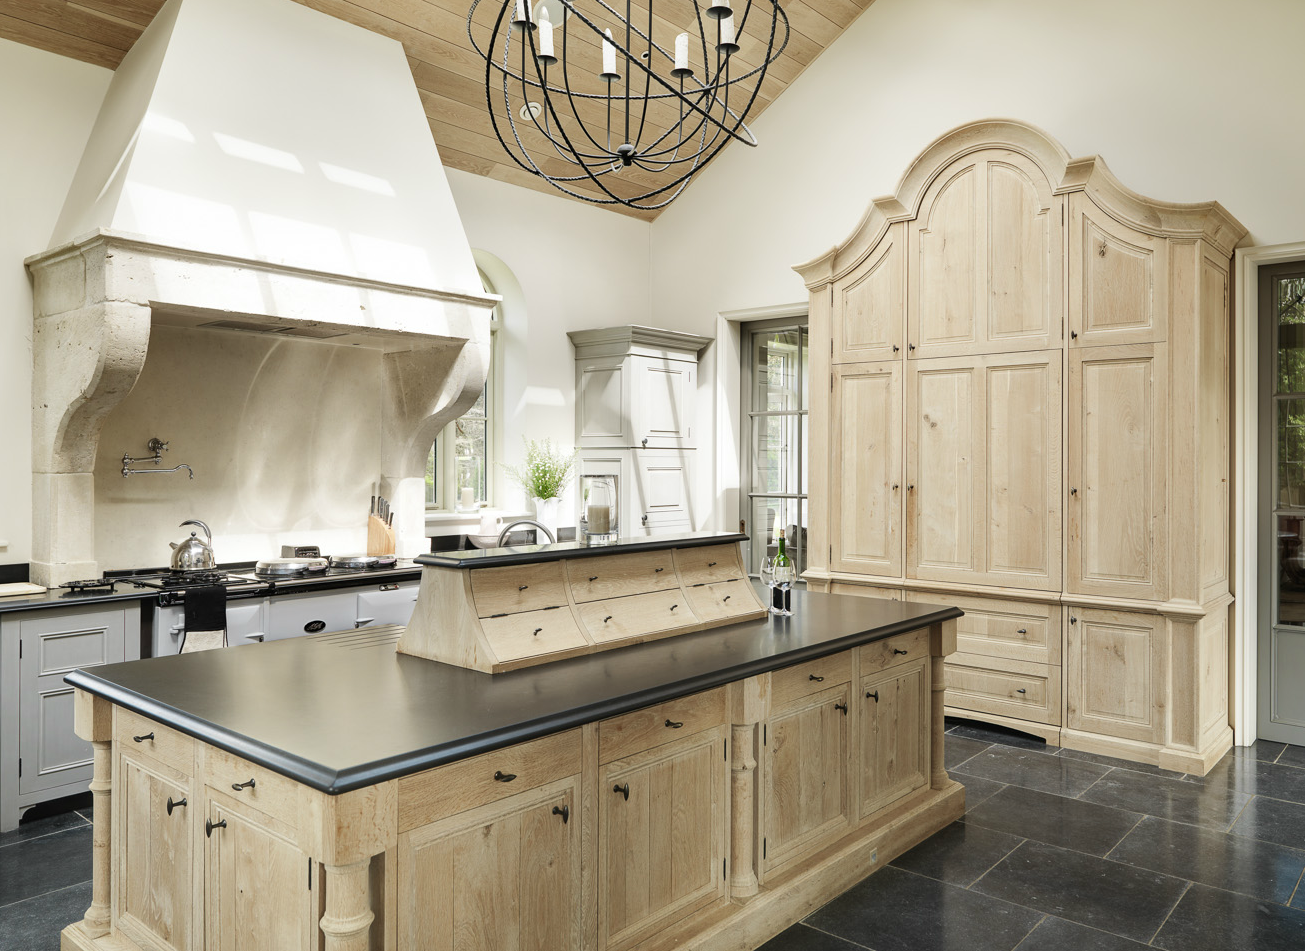 Design In Wood What To Do With Oak Cabinets: Pin By OPAL On Kitchen Ideas